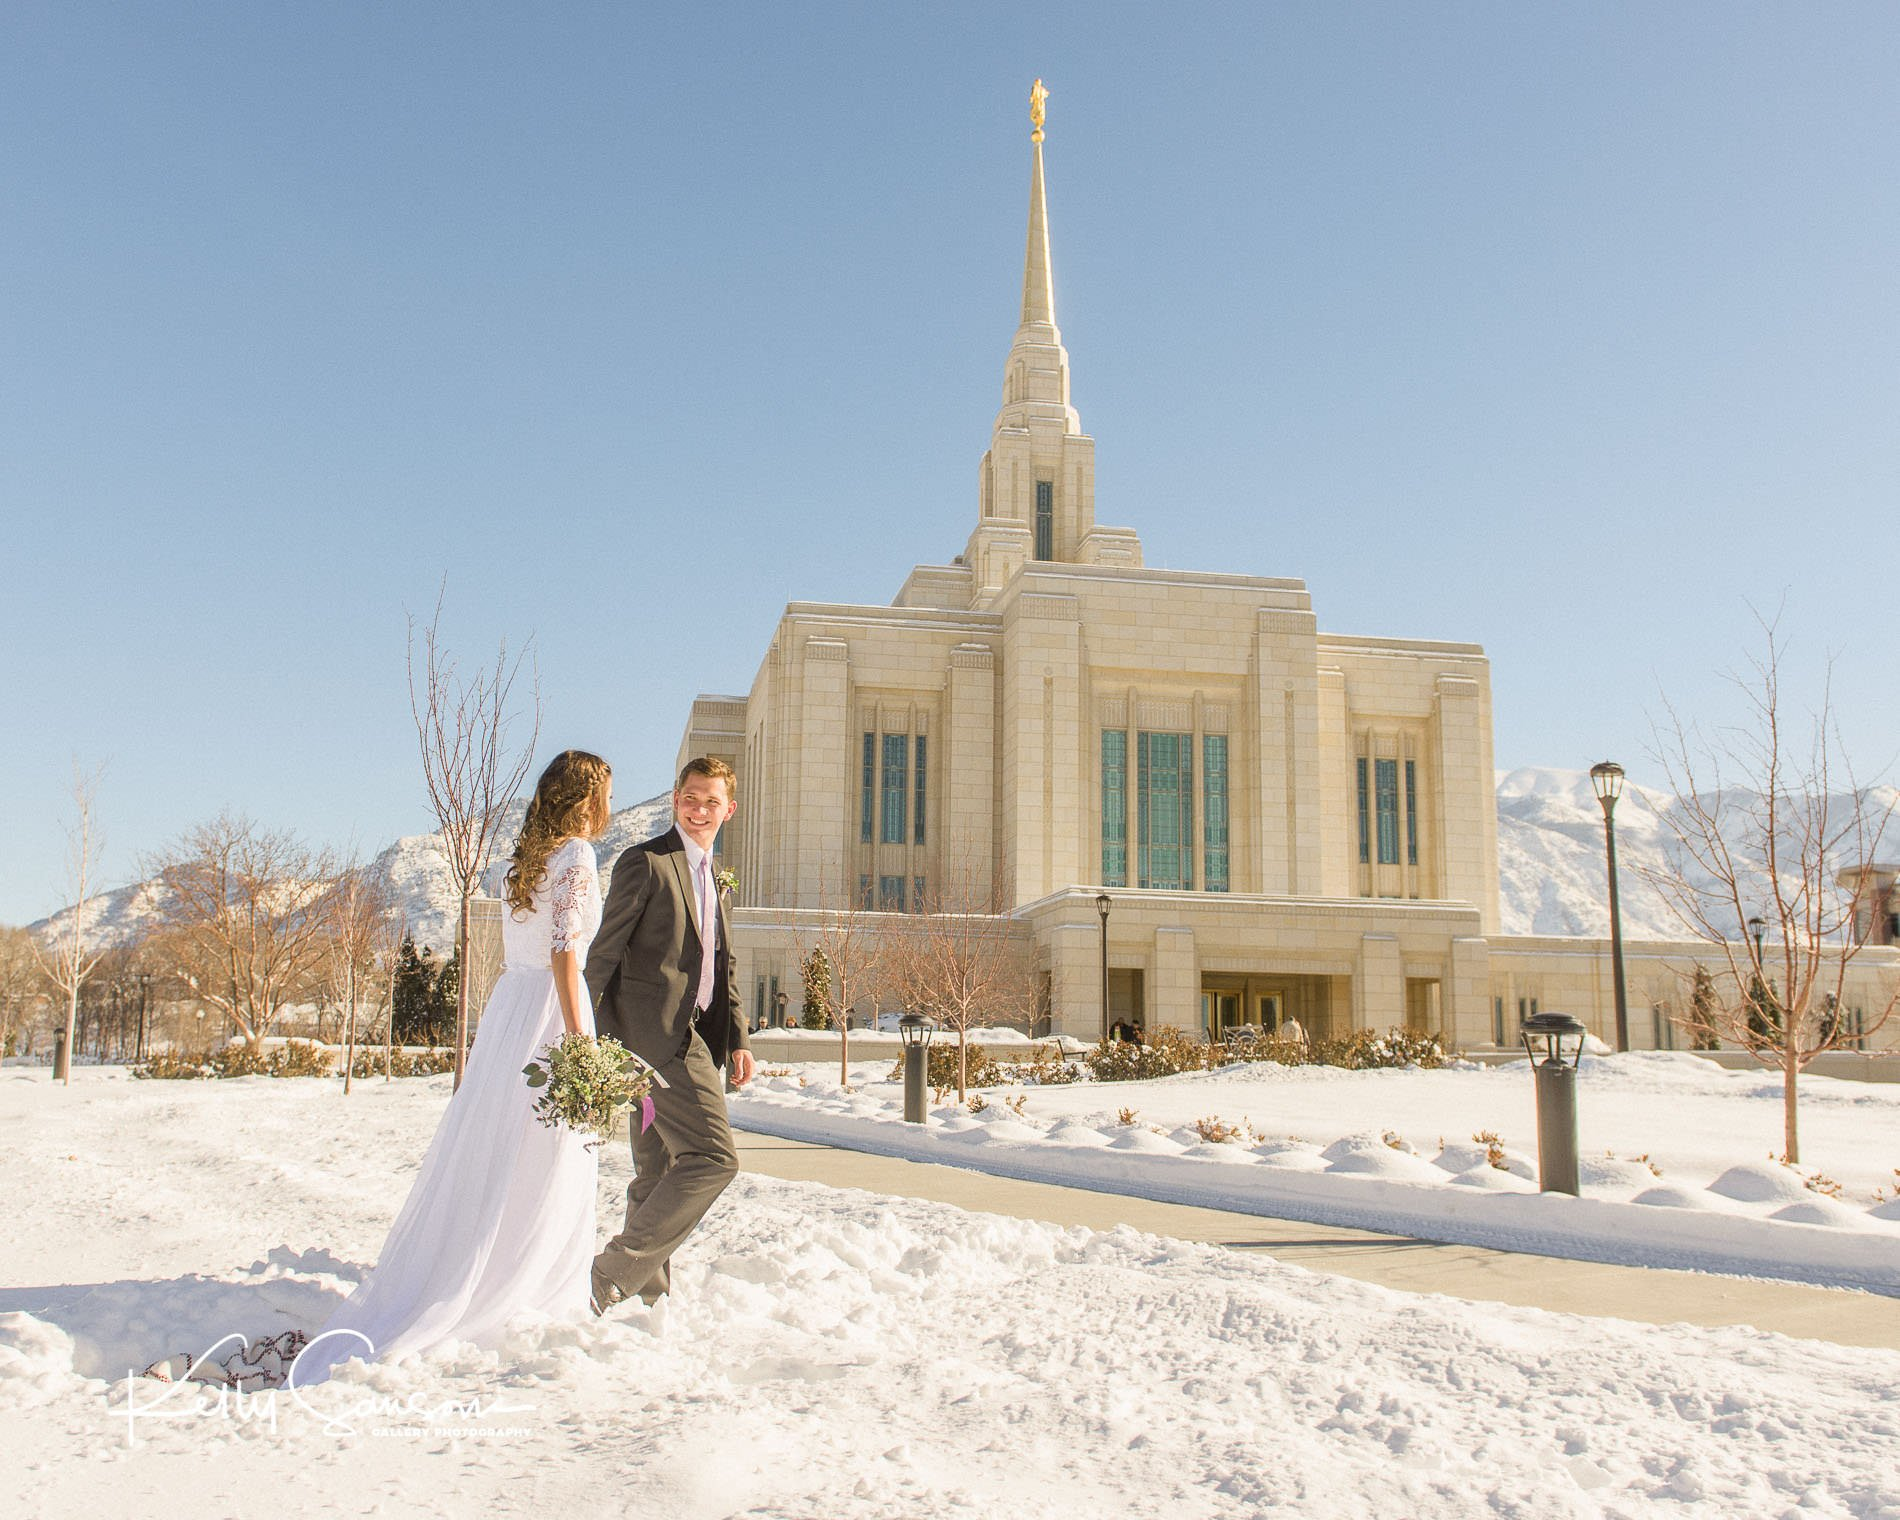 A groom leads his bride through the snow for Ogden LDS temple wedding photography.